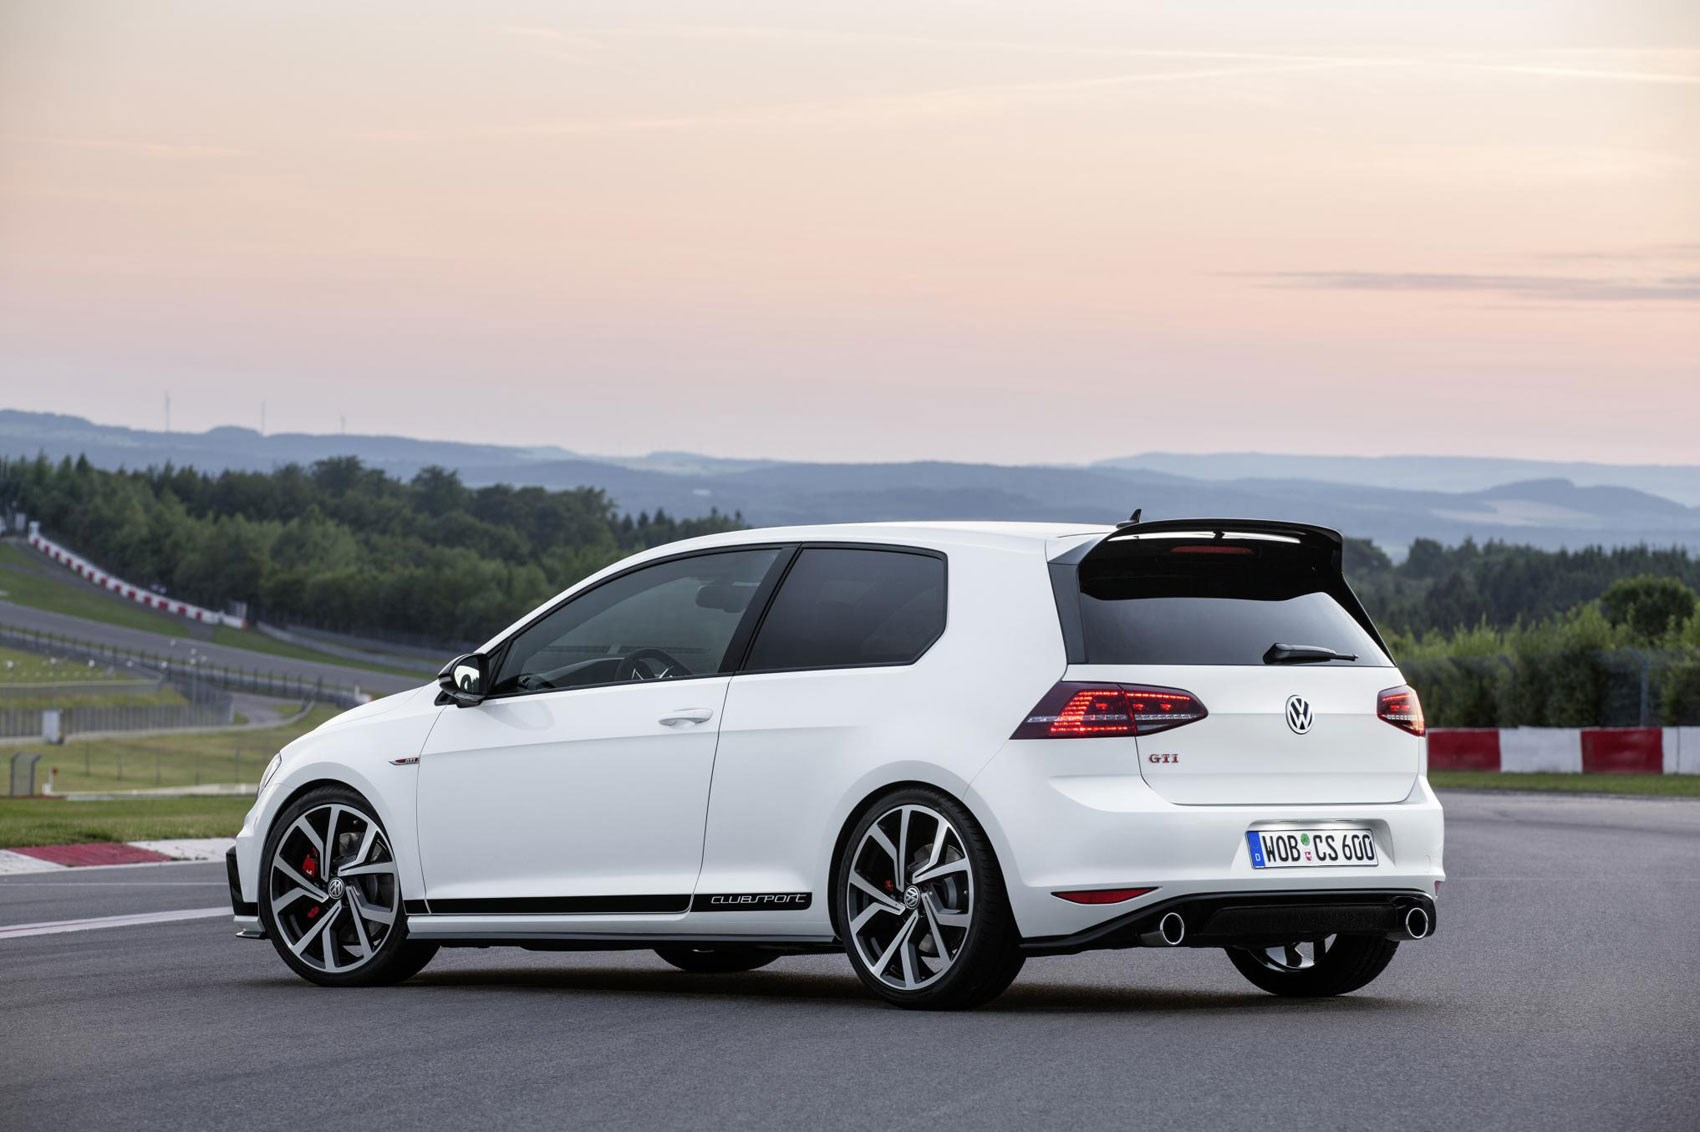 vw golf gti clubsport 2016 the most powerful gti yet by car magazine. Black Bedroom Furniture Sets. Home Design Ideas